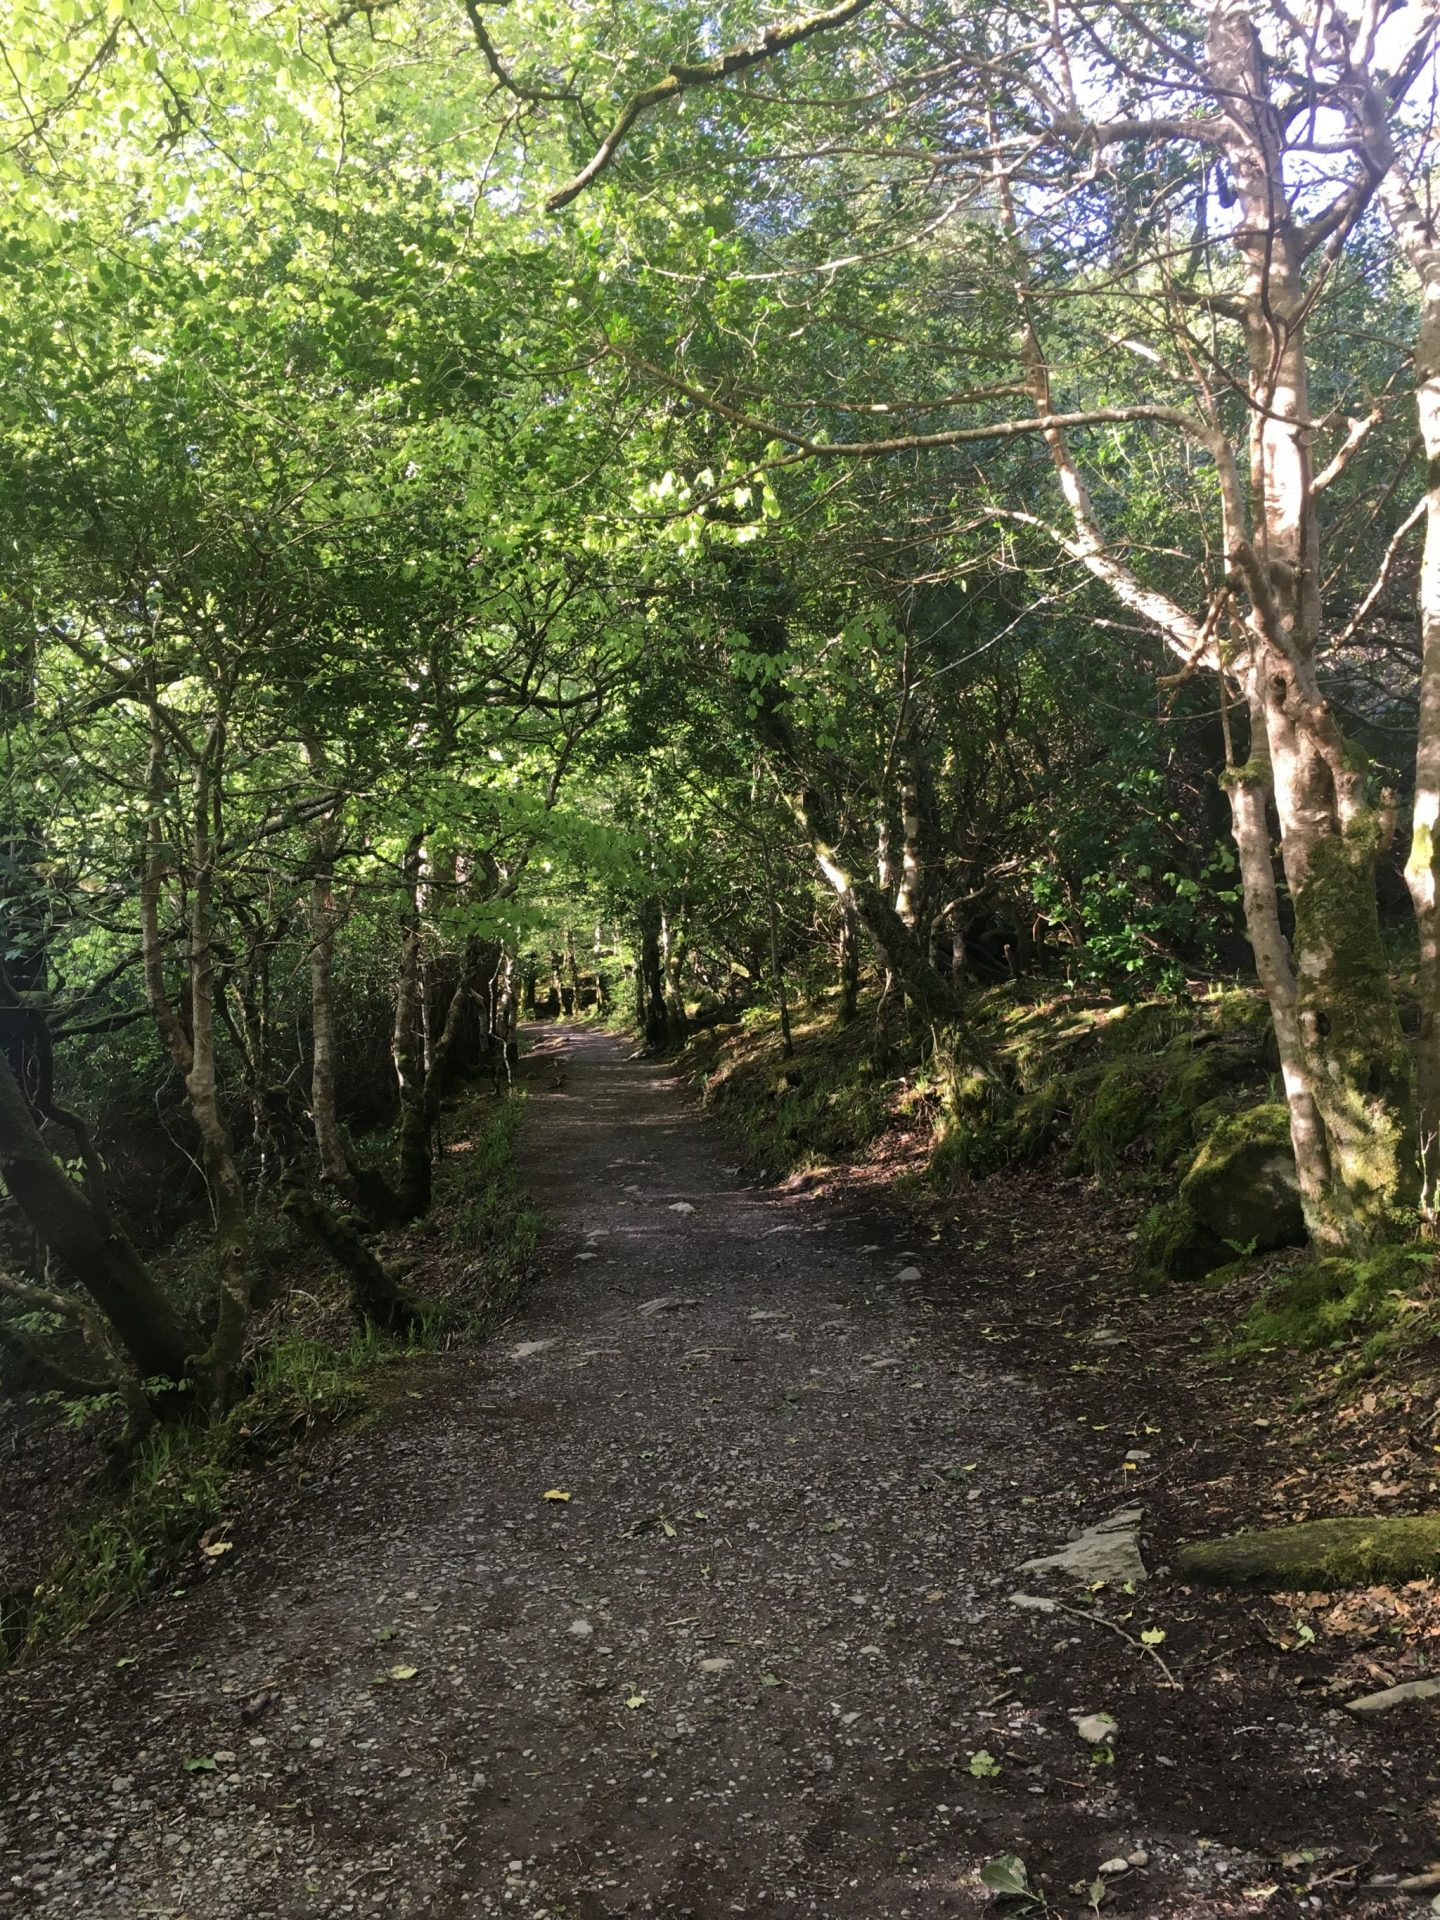 Hike to Torc Waterfall through forest